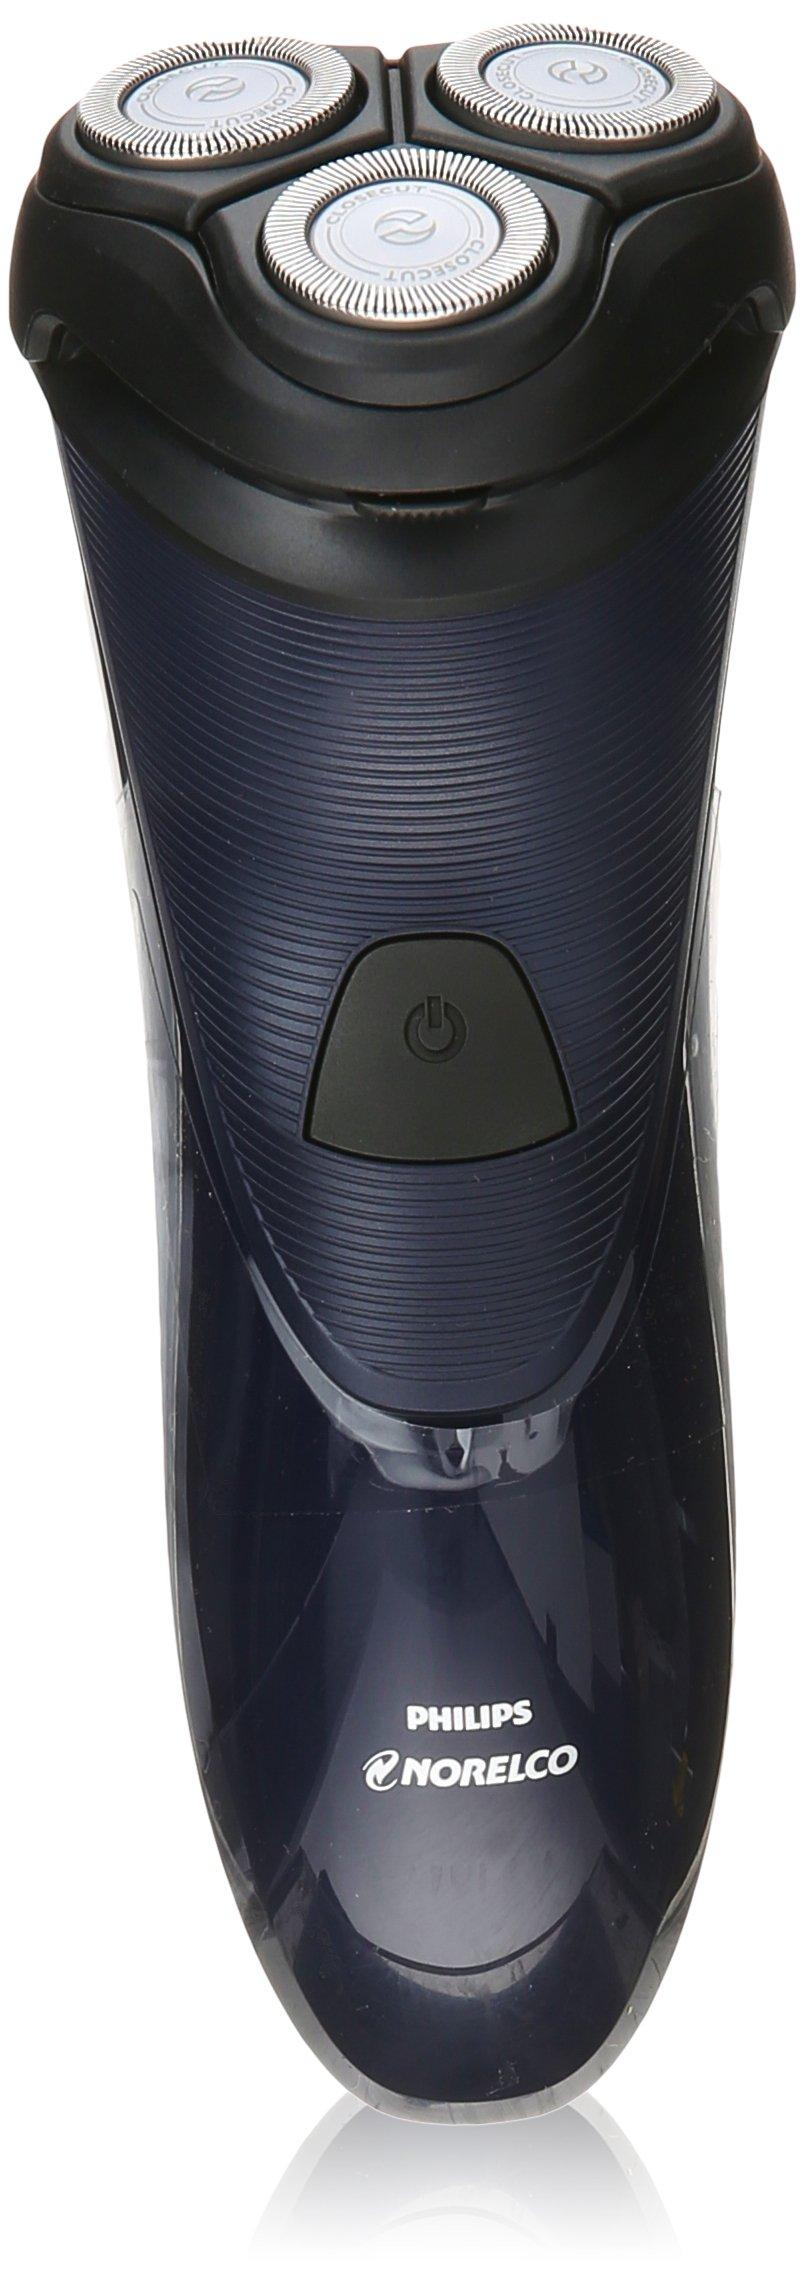 Philips Norelco Corded Electric Shaver 1100 S1150 81 With